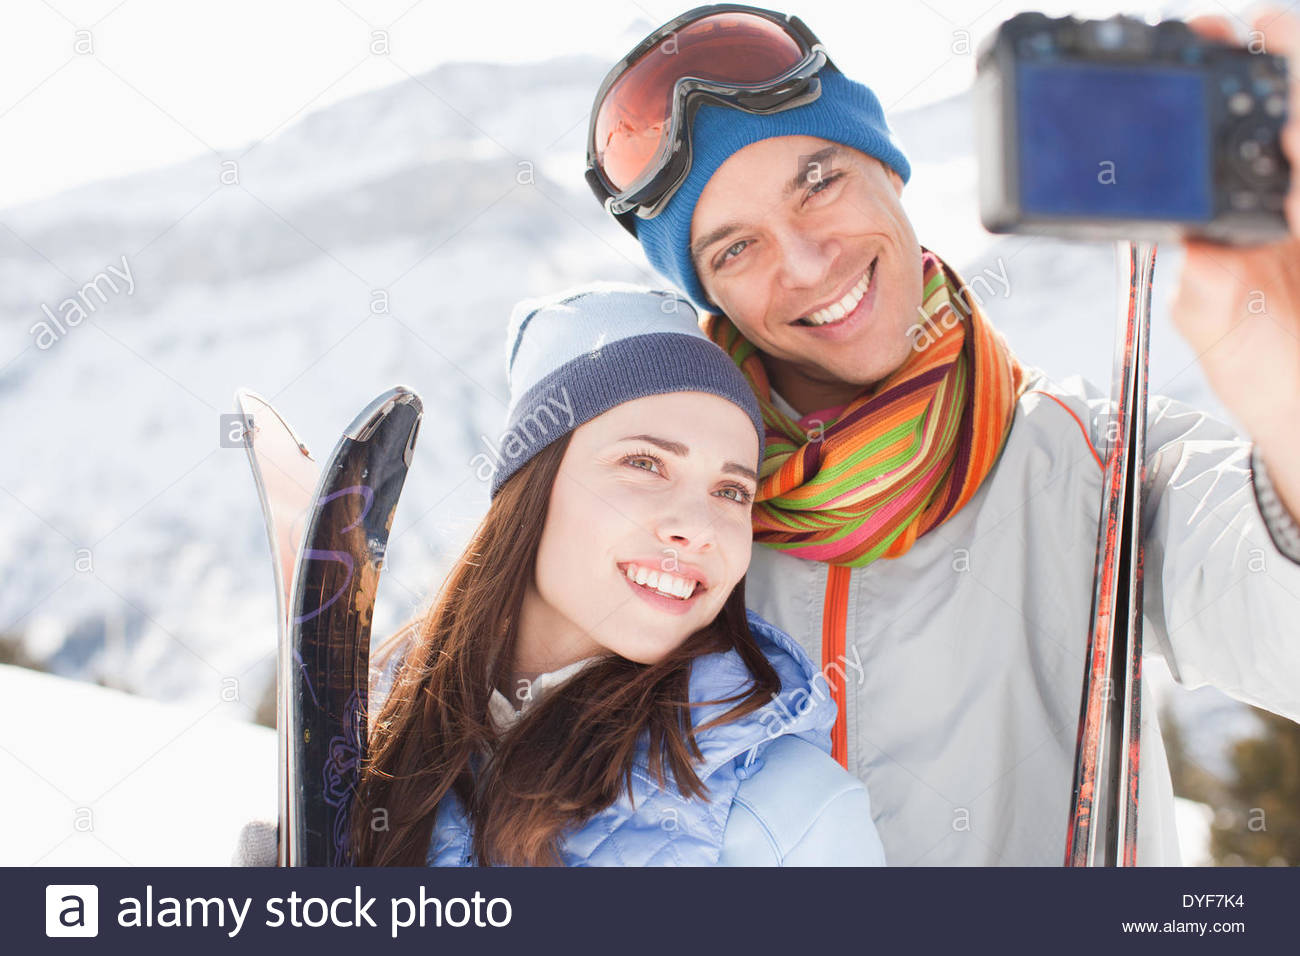 Couple with skis taking self-portrait - Stock Image